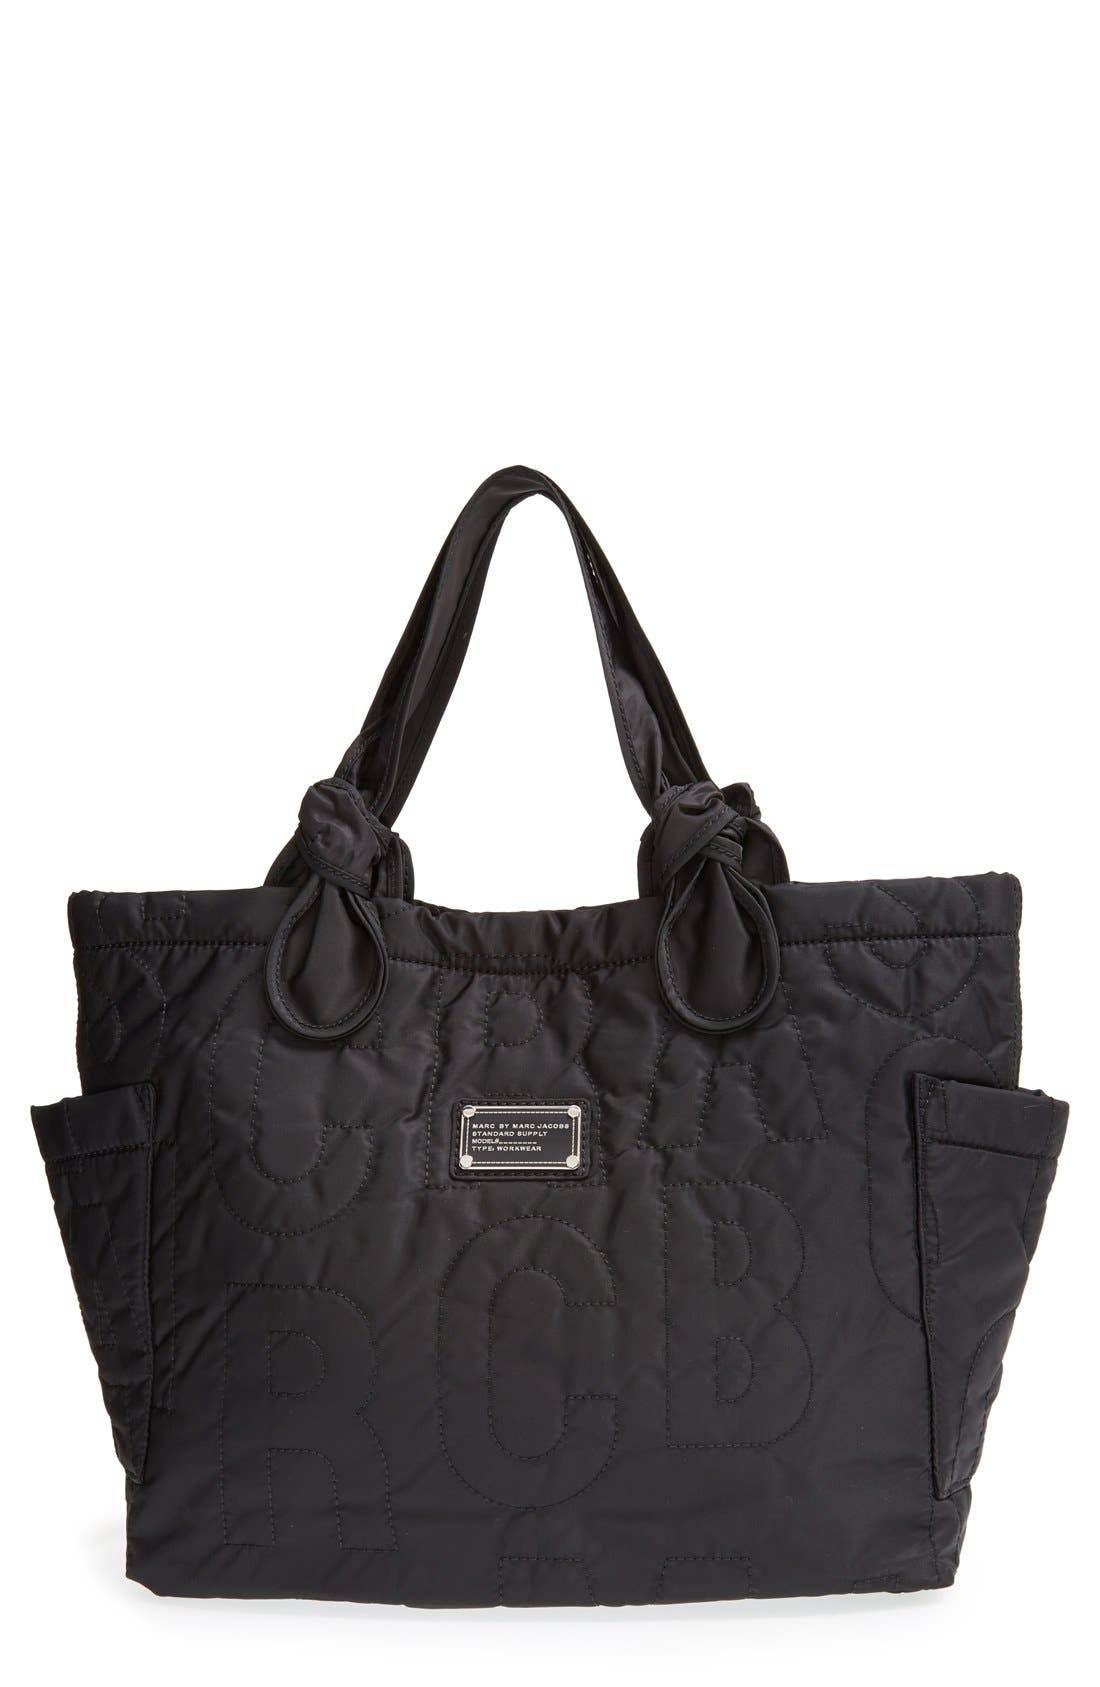 MARC JACOBS MARC BY MARC JACOBS 'Medium Pretty Nylon Tate' Tote, Main, color, 001